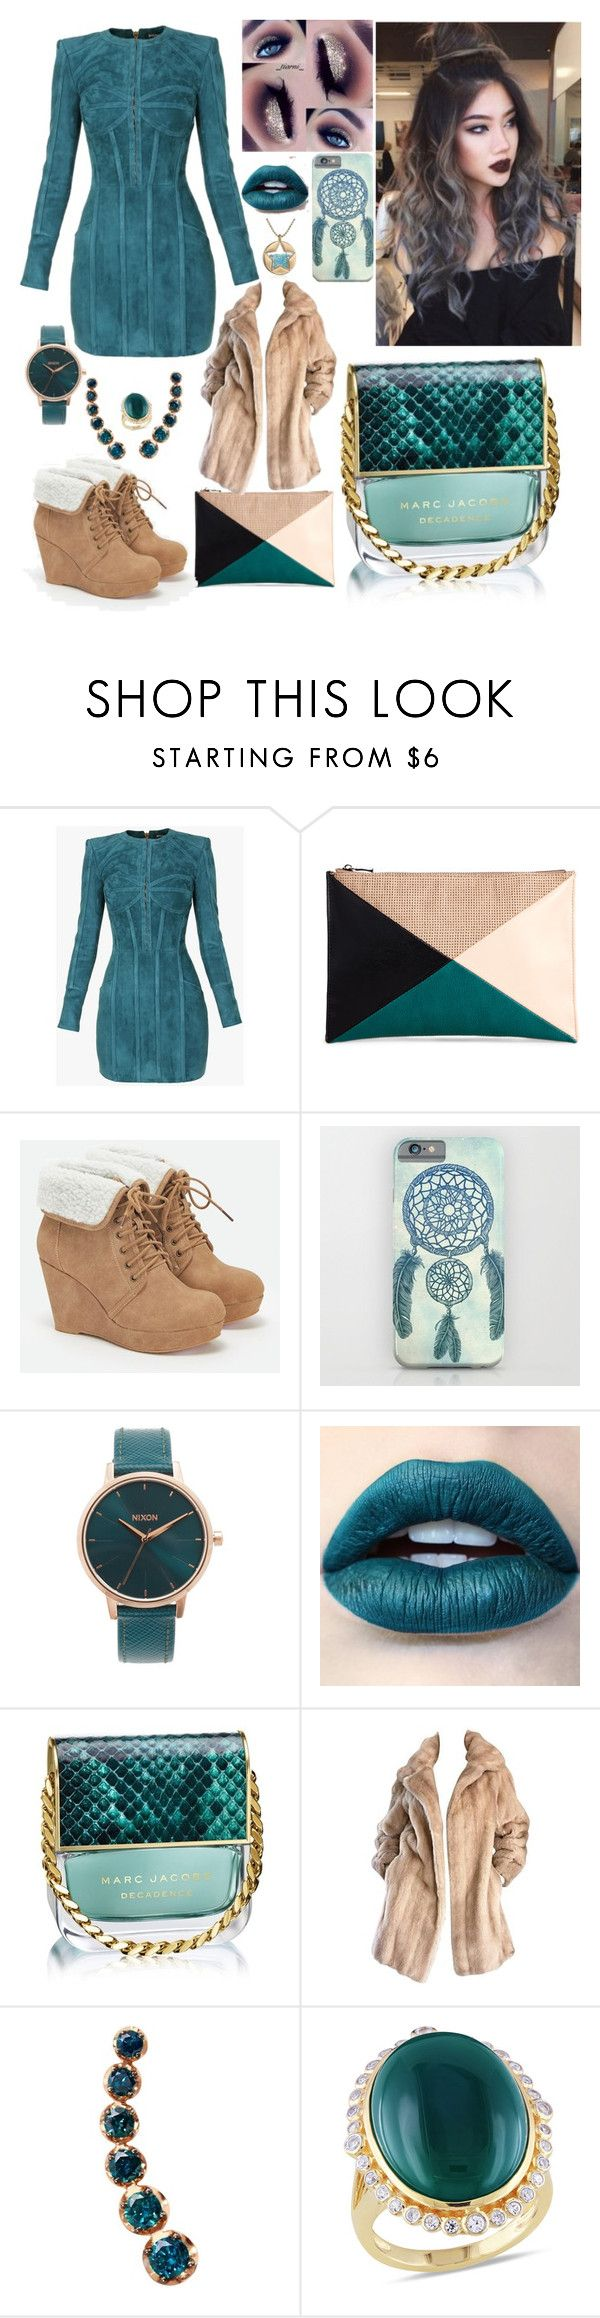 """""""My Christmas outfit"""" by ejollia on Polyvore featuring Balmain, Sole Society, JustFab, Nixon, Marc Jacobs, Lilli Ann, Annoushka, Ice and Betsey Johnson"""